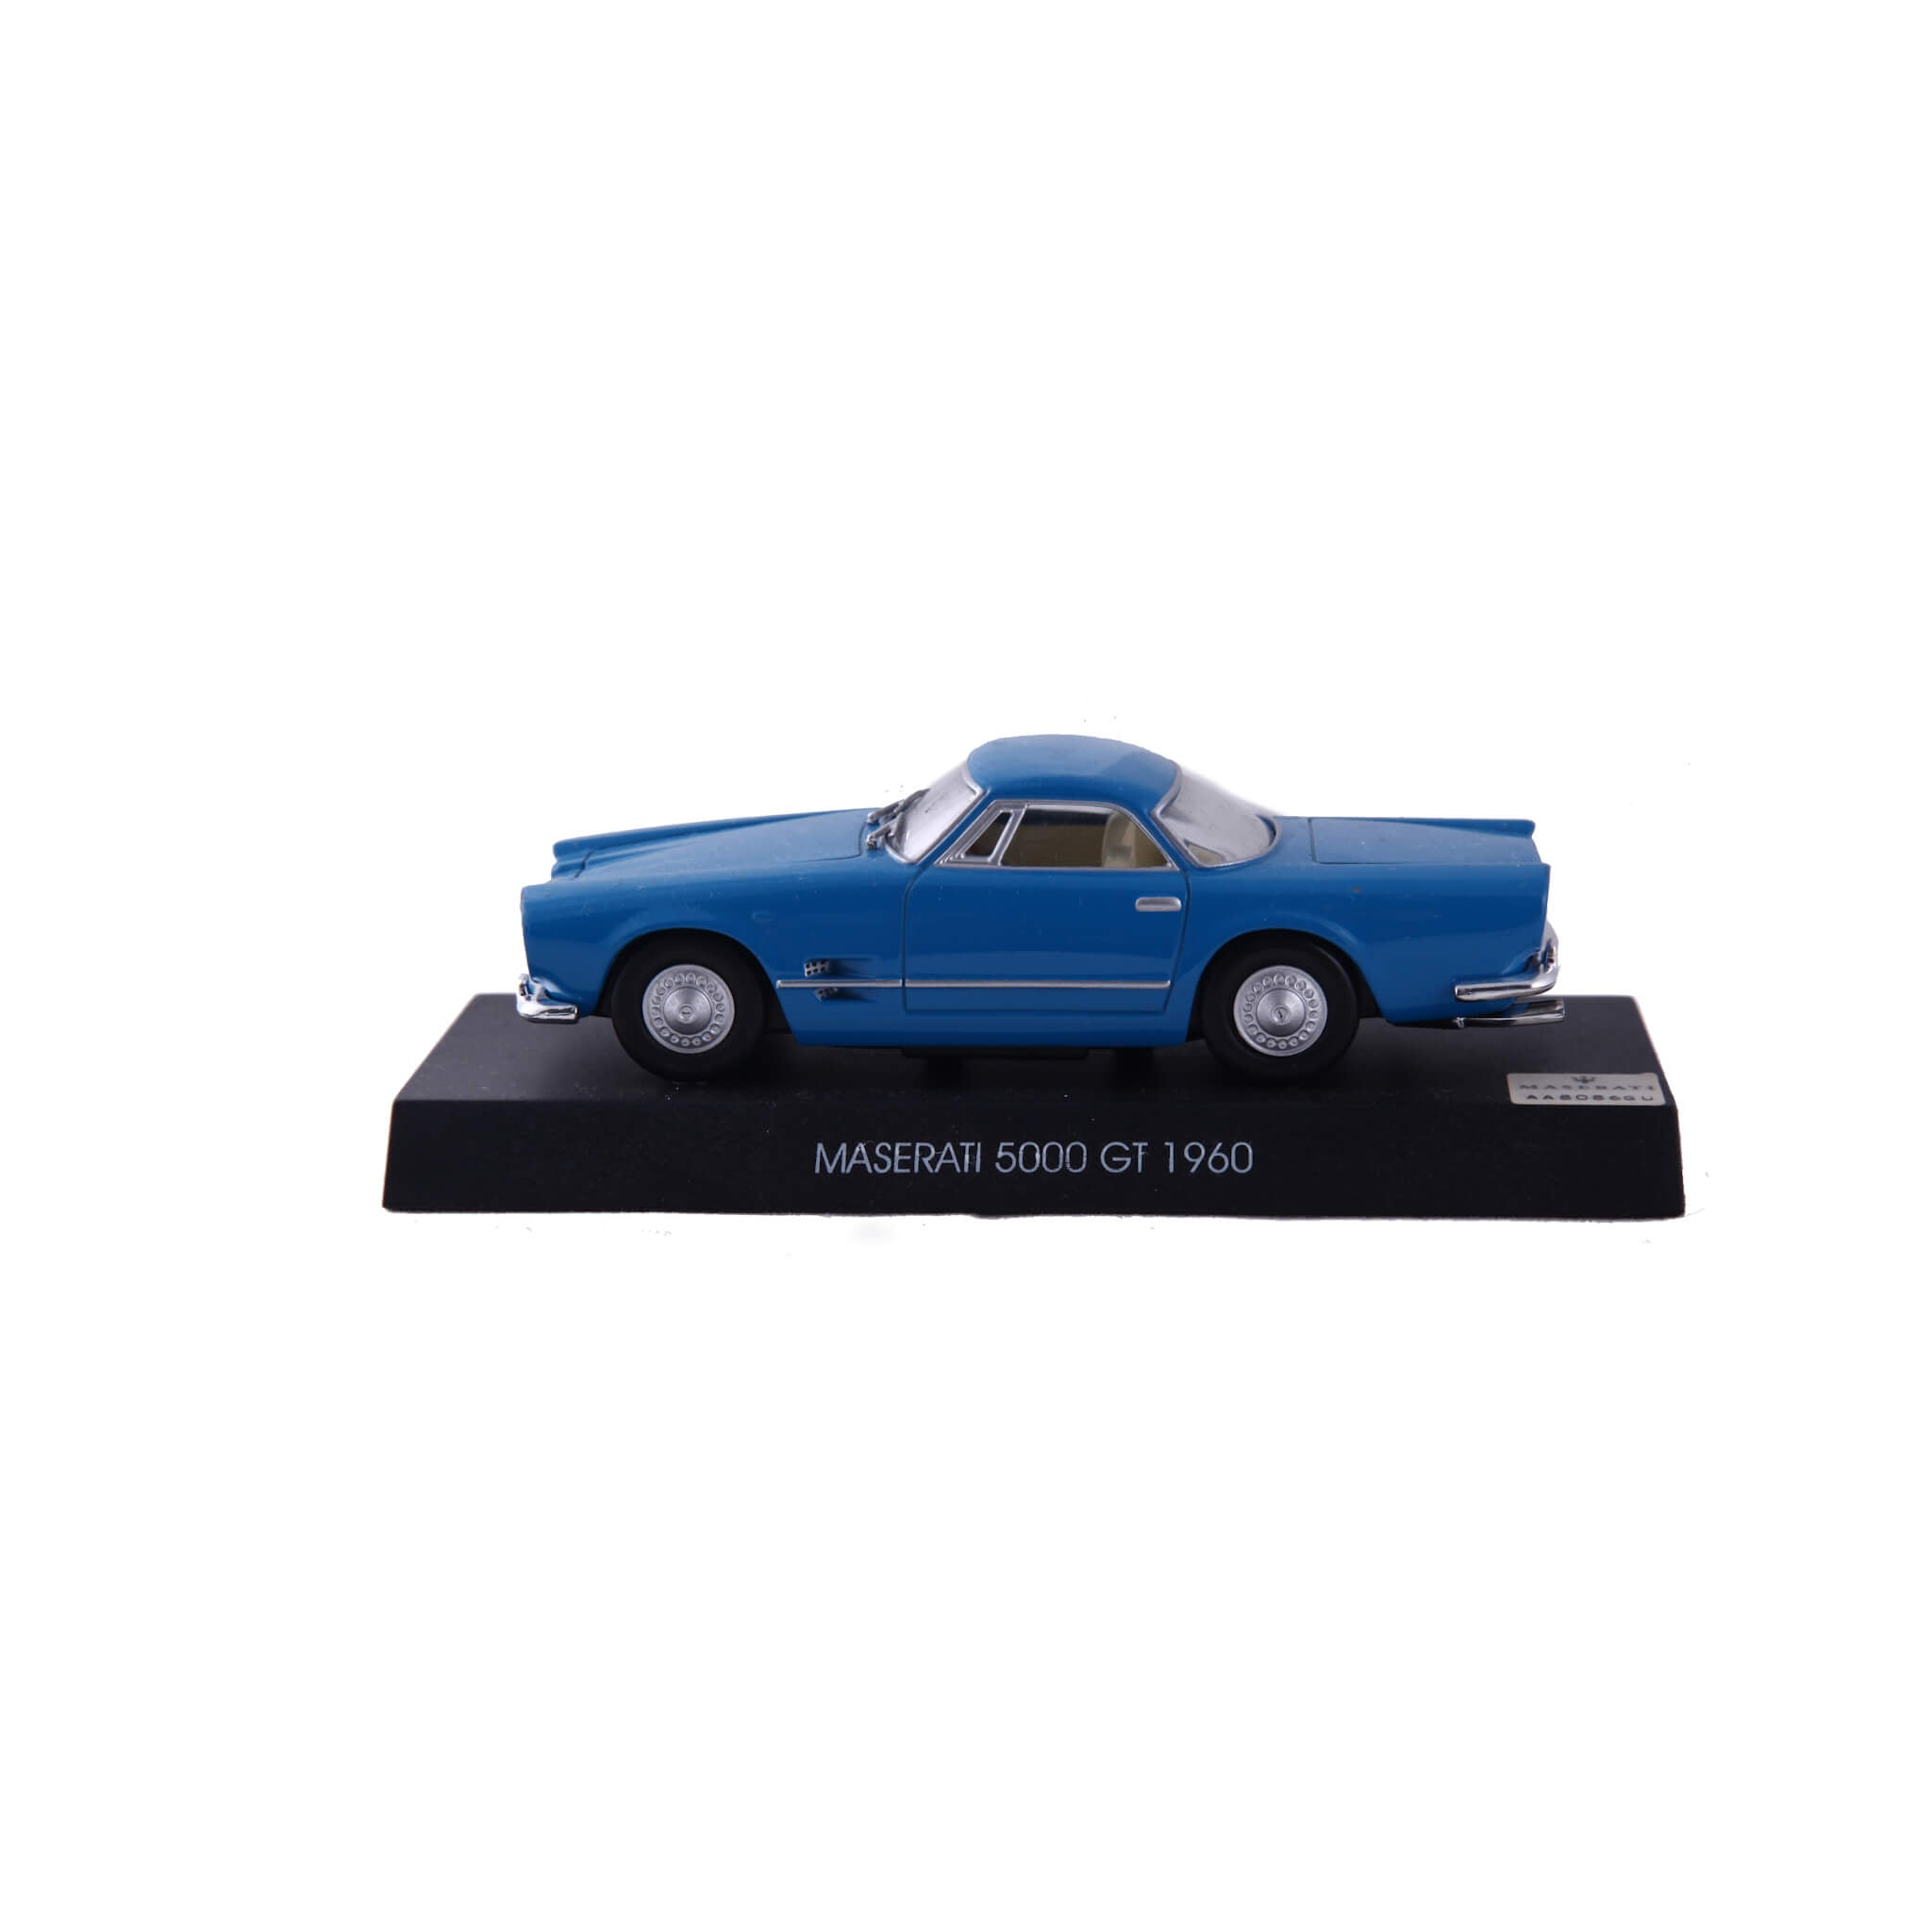 1960 Maserati 5000Gt 1:43 Model Officially Certified By Maserati Model